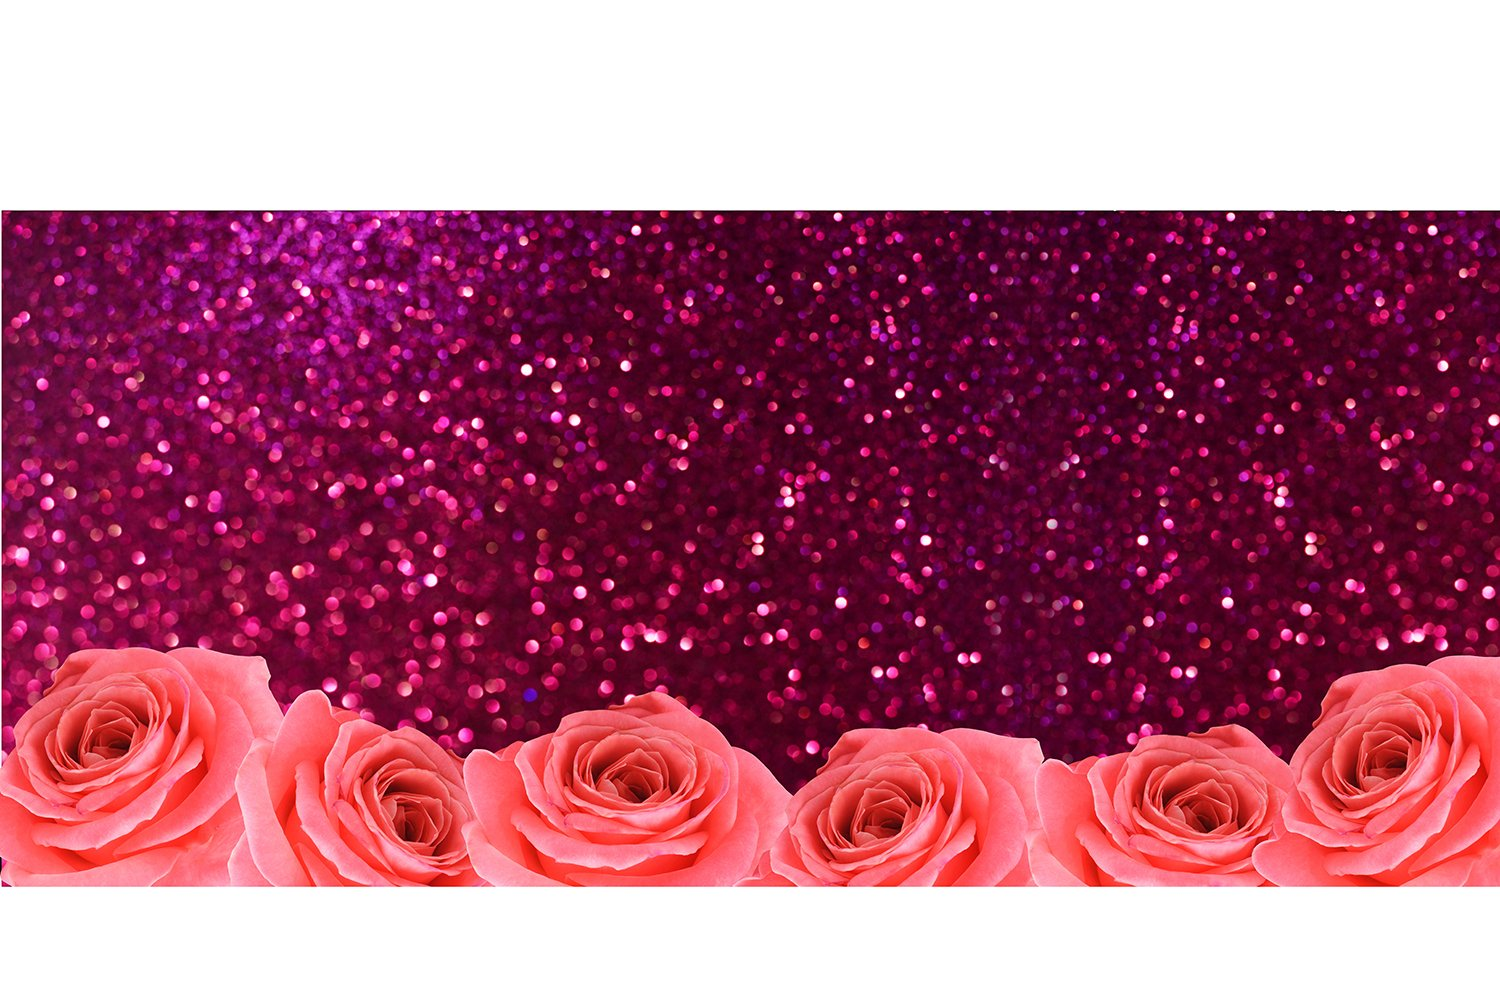 banner texture background with roses flowers and pink bokeh example image 1